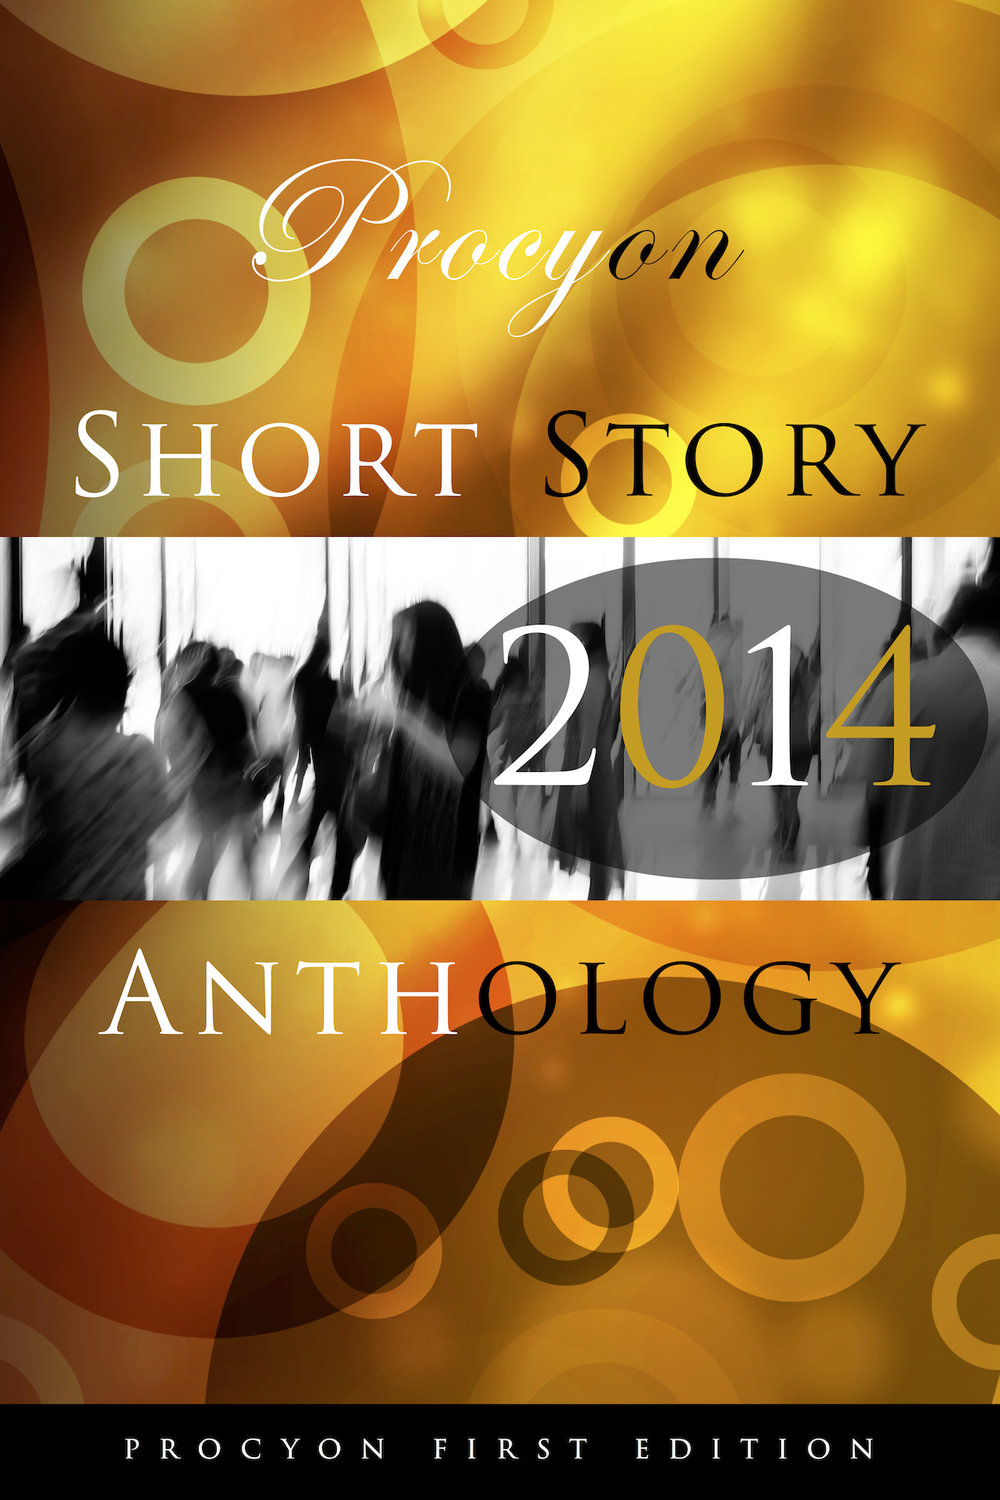 Procyon Short Story Anthology - FrontCover - Final.jpg